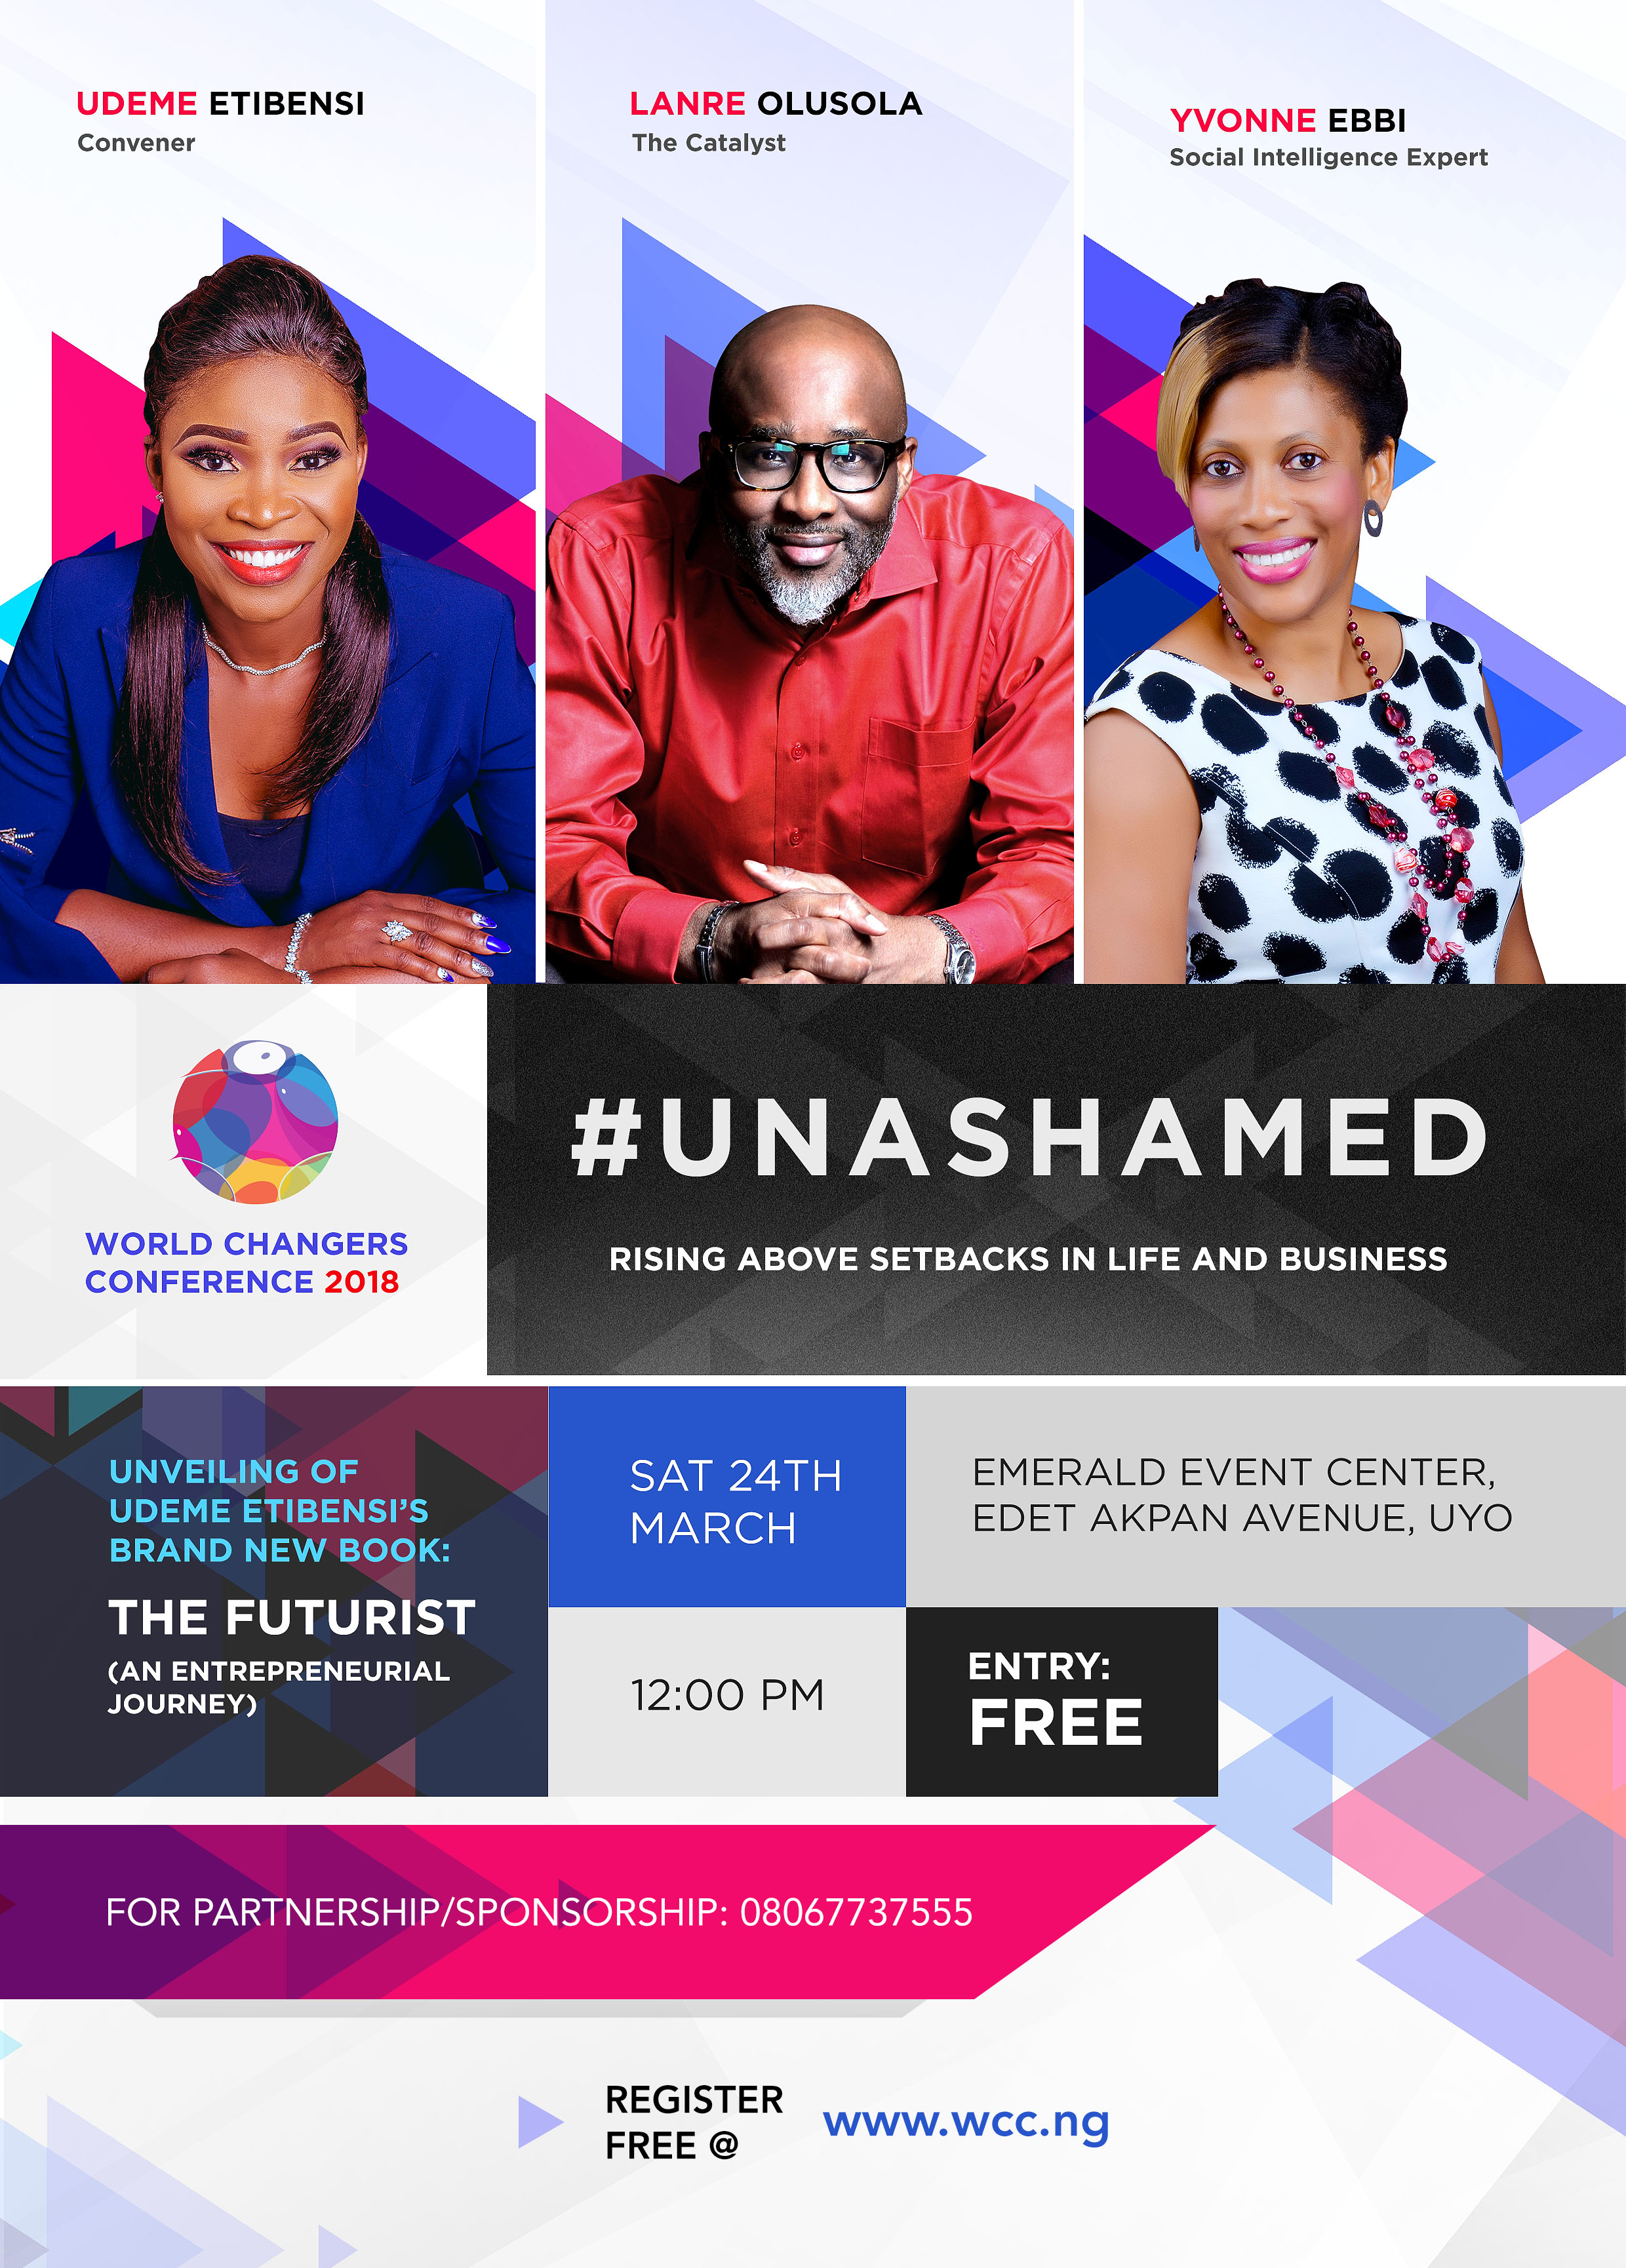 Meet The Speakers of World Changers Conference holding this Saturday in Uyo